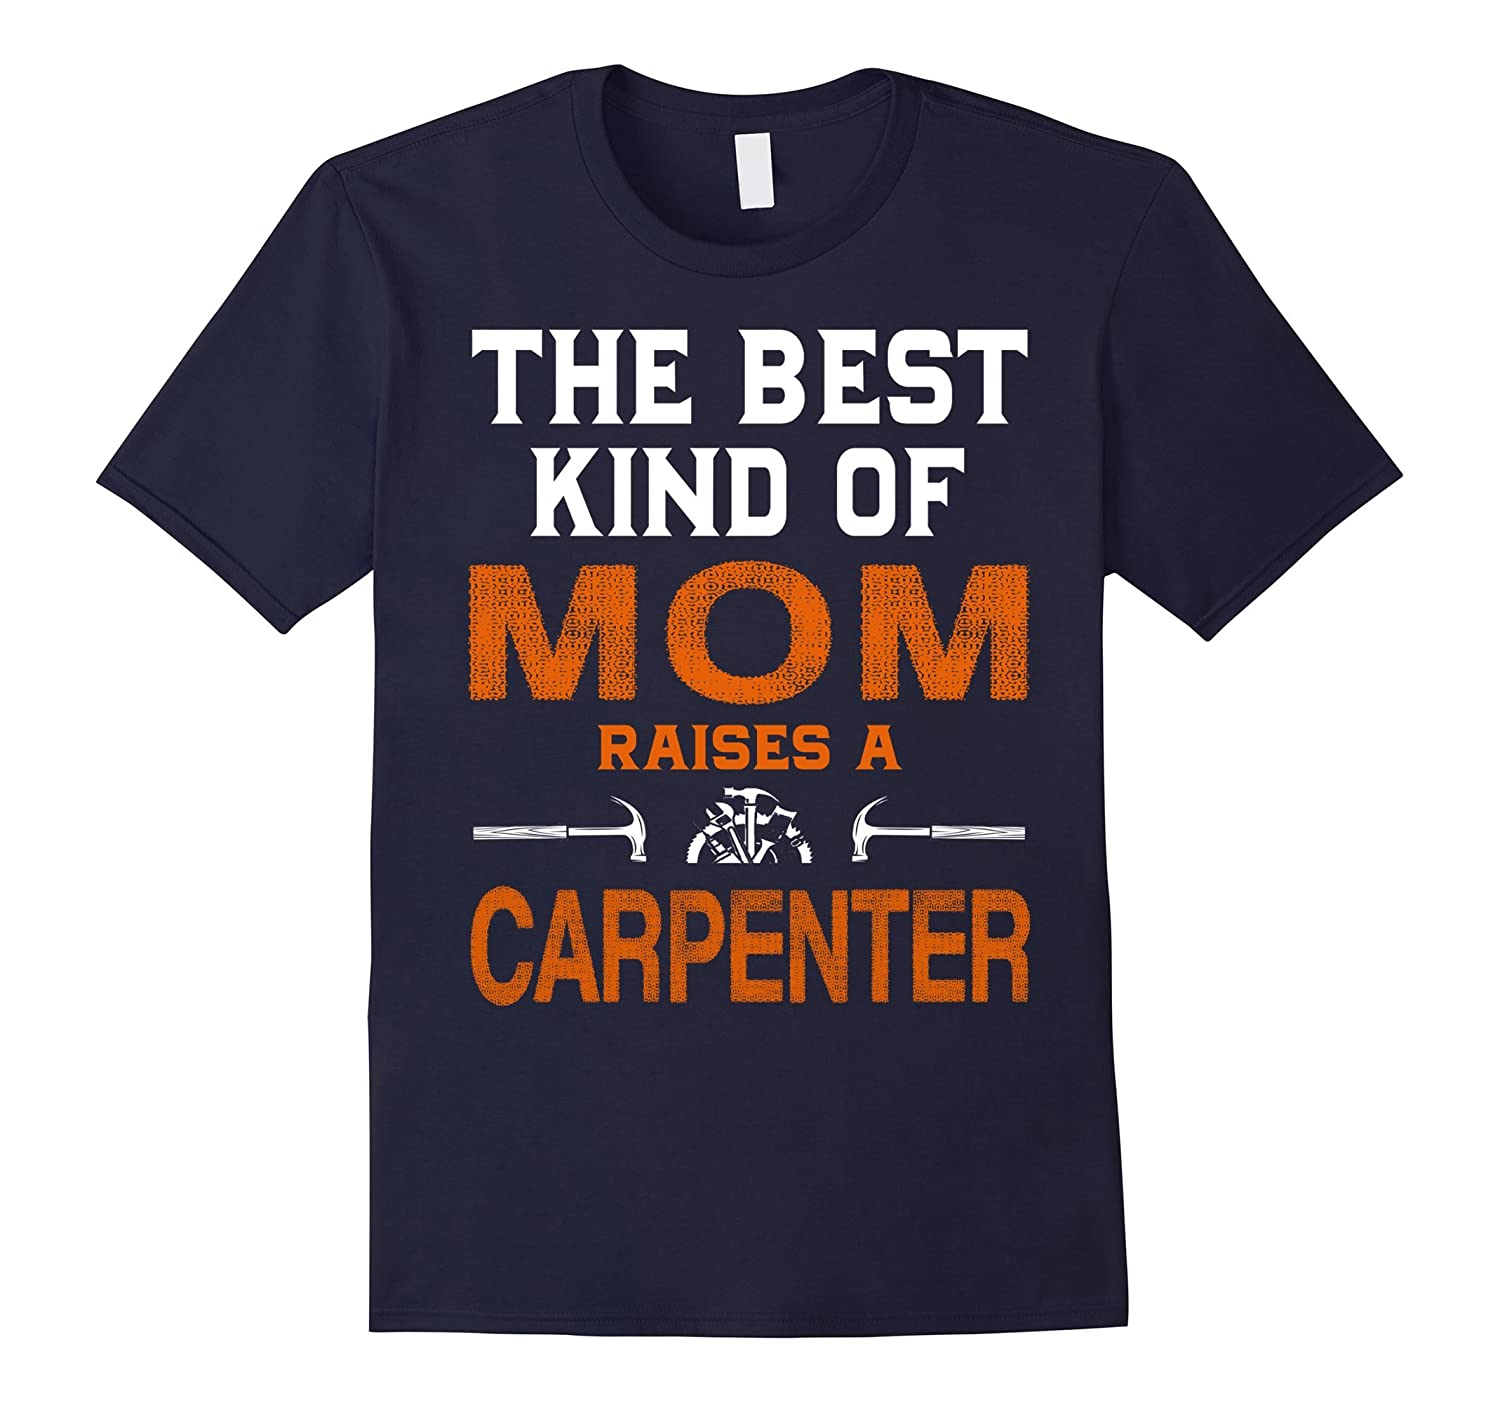 Woodworker Shirt - The Best Kind Of Mom Raises A Carpenter-TD